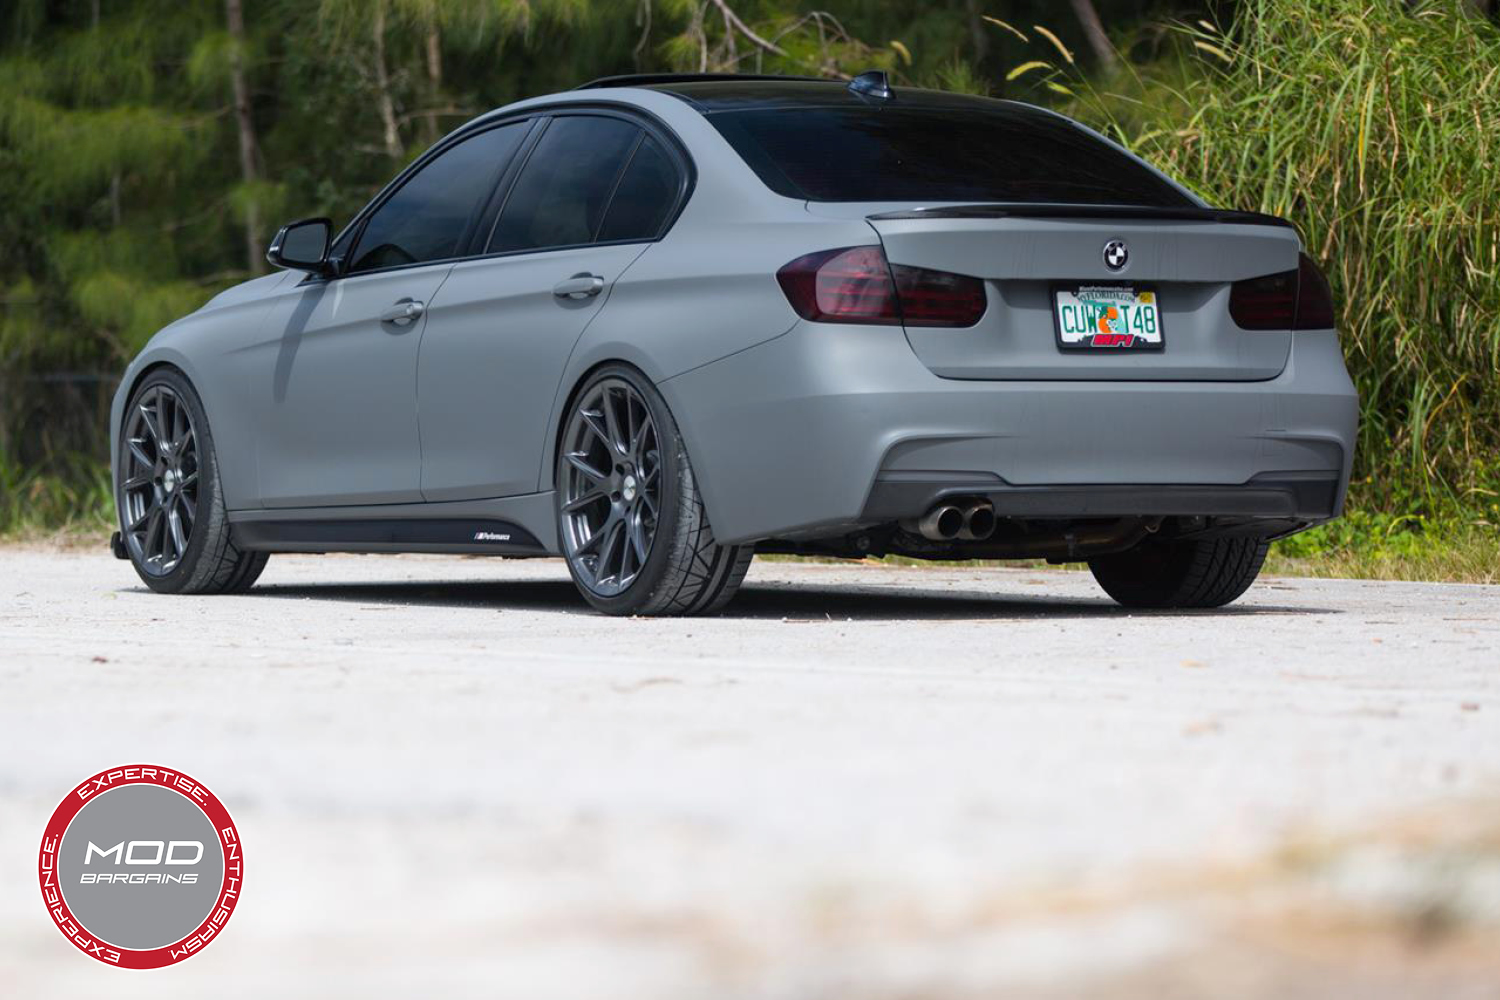 Vossen 20-inch Gloss Graphite VFS6 Wheel Installed BMW F80 M3 3/4 Rear View